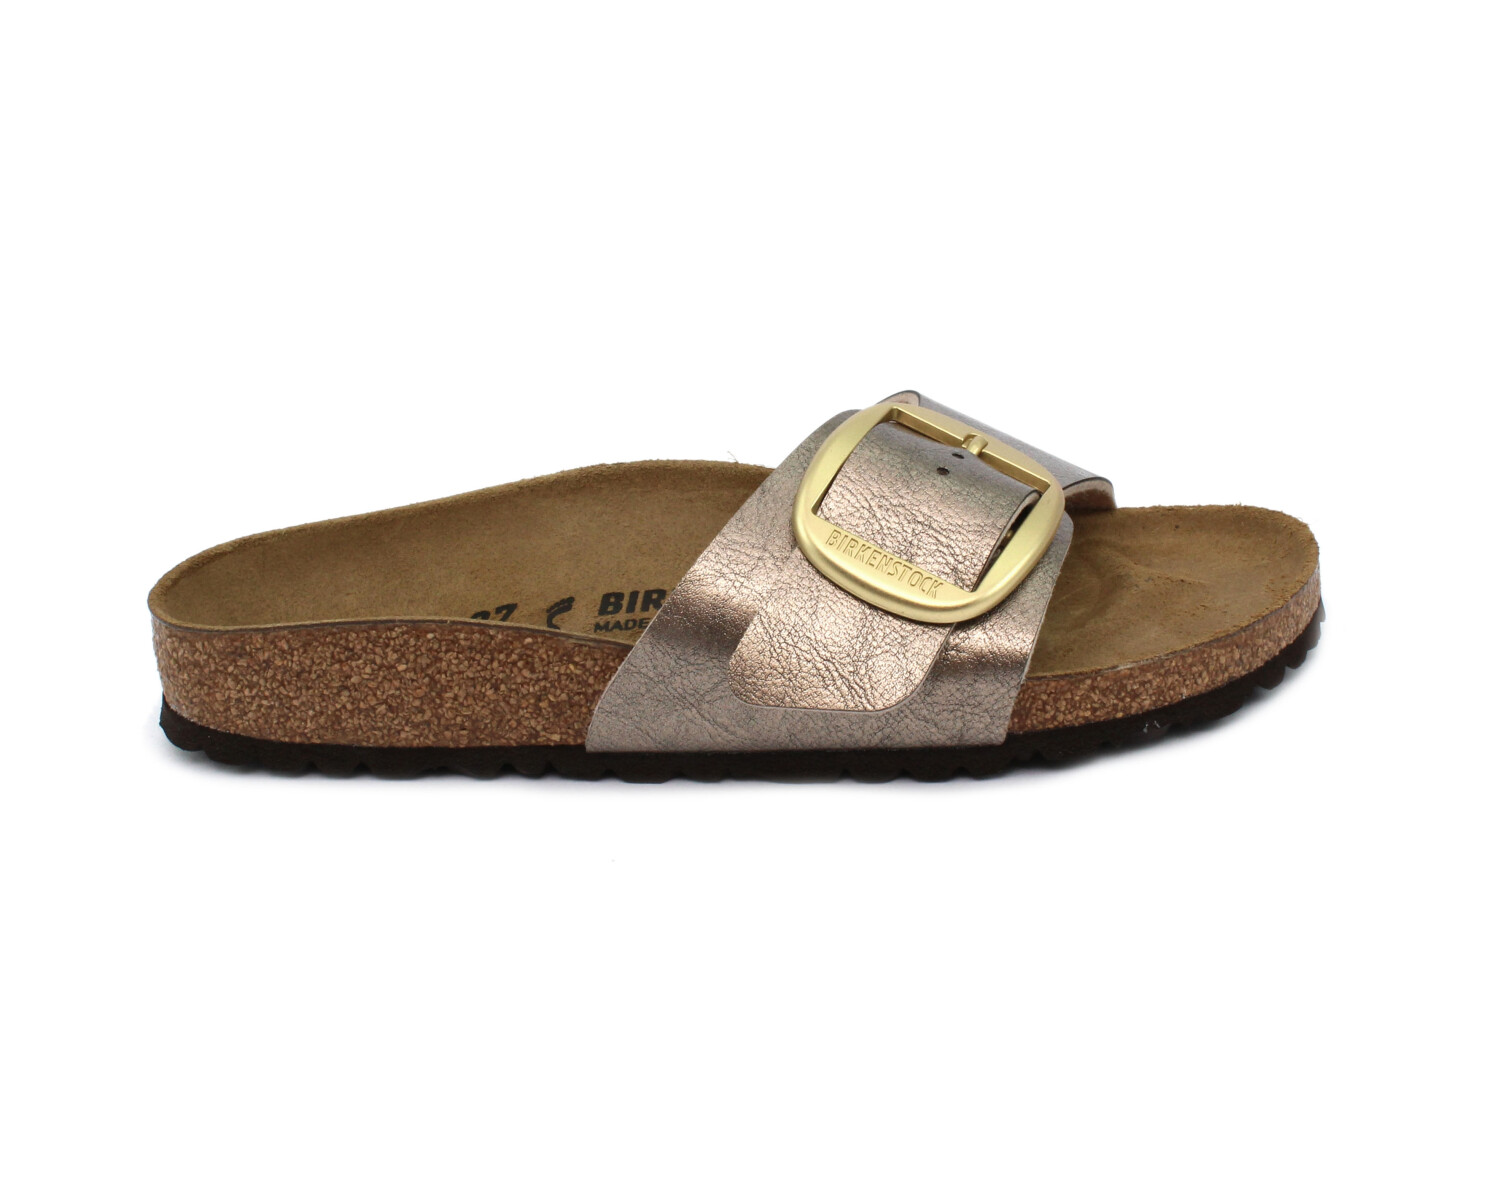 Slipper BIRKENSTOCK 1016237 Madrid Big Buckle graceful taupe Birko Flor